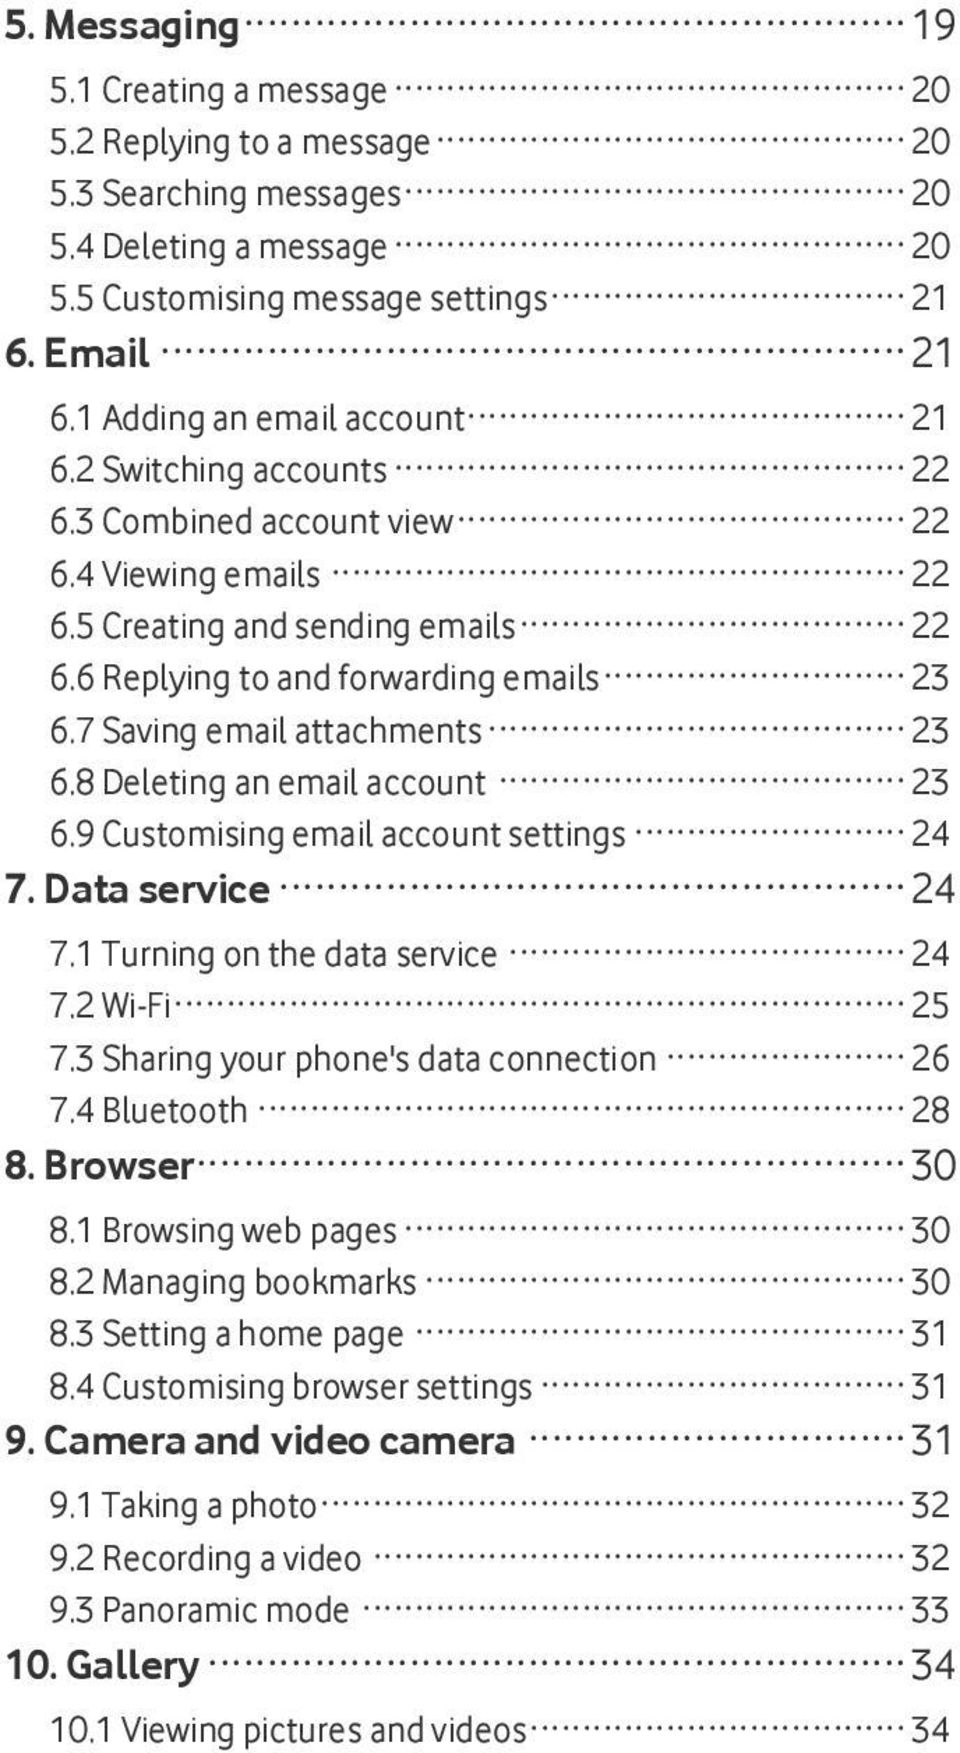 7 Saving email attachments 23 6.8 Deleting an email account 23 6.9 Customising email account settings 24 7. Data service 24 7.1 Turning on the data service 24 7.2 Wi-Fi 25 7.